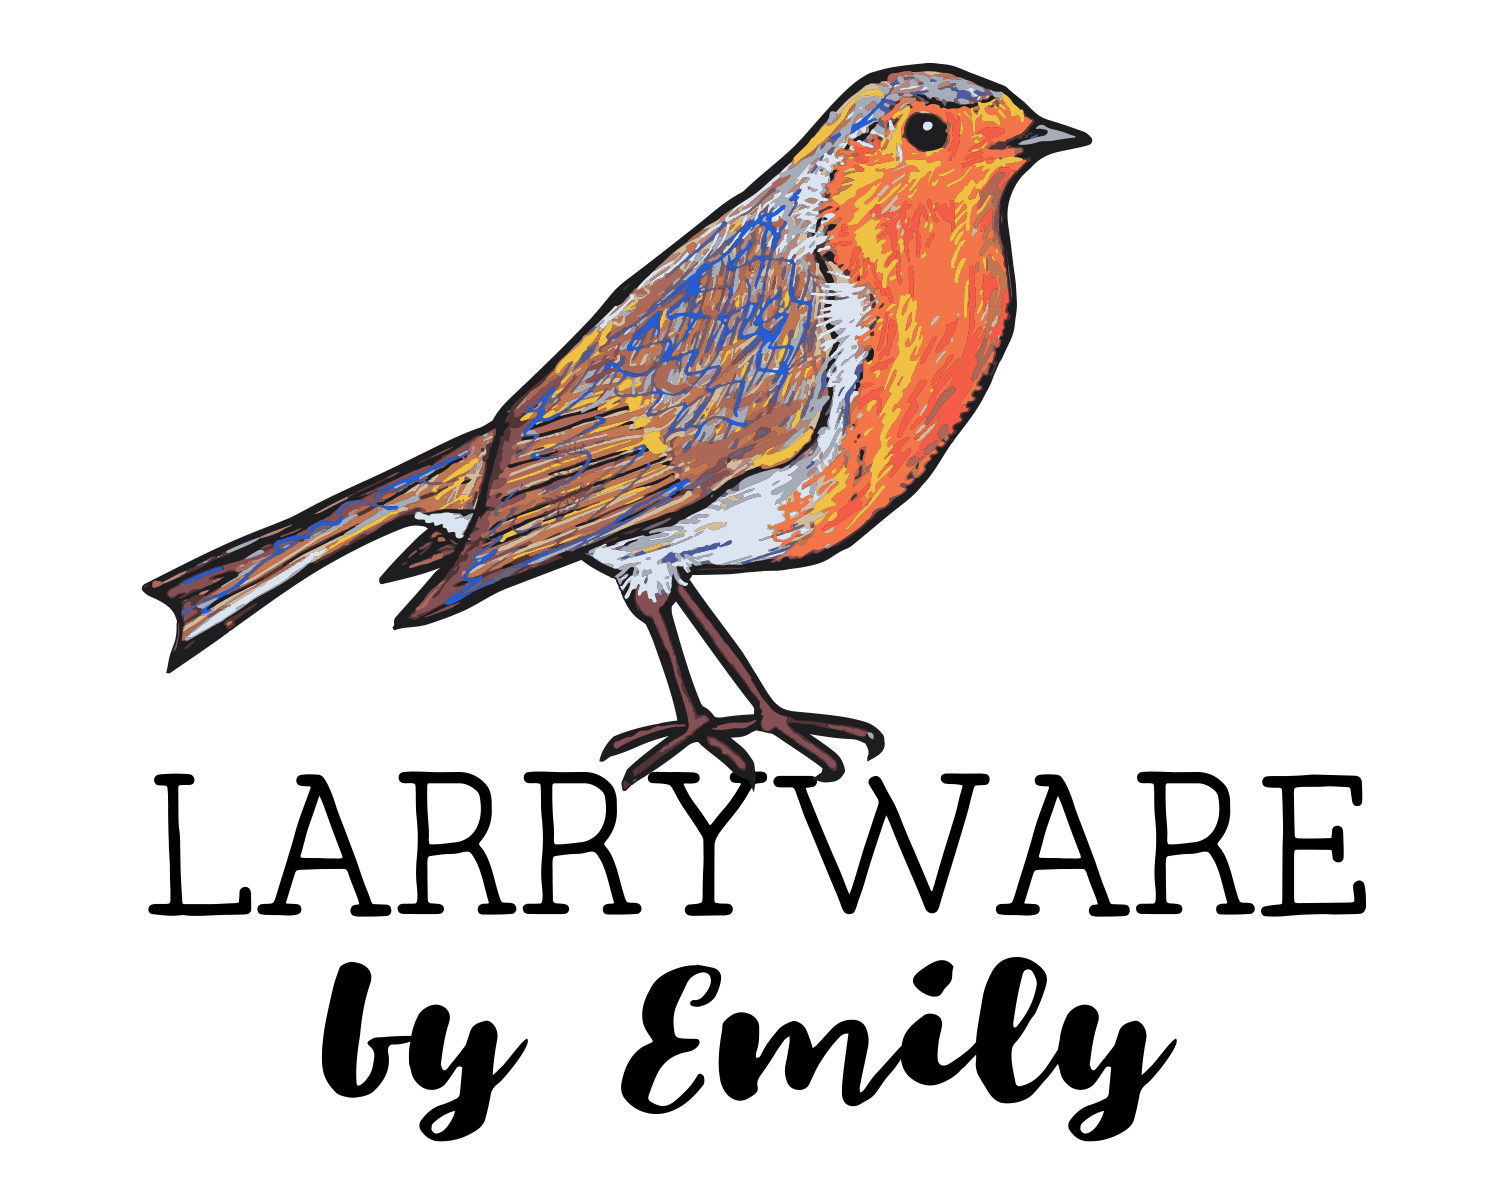 Larryware by Emily